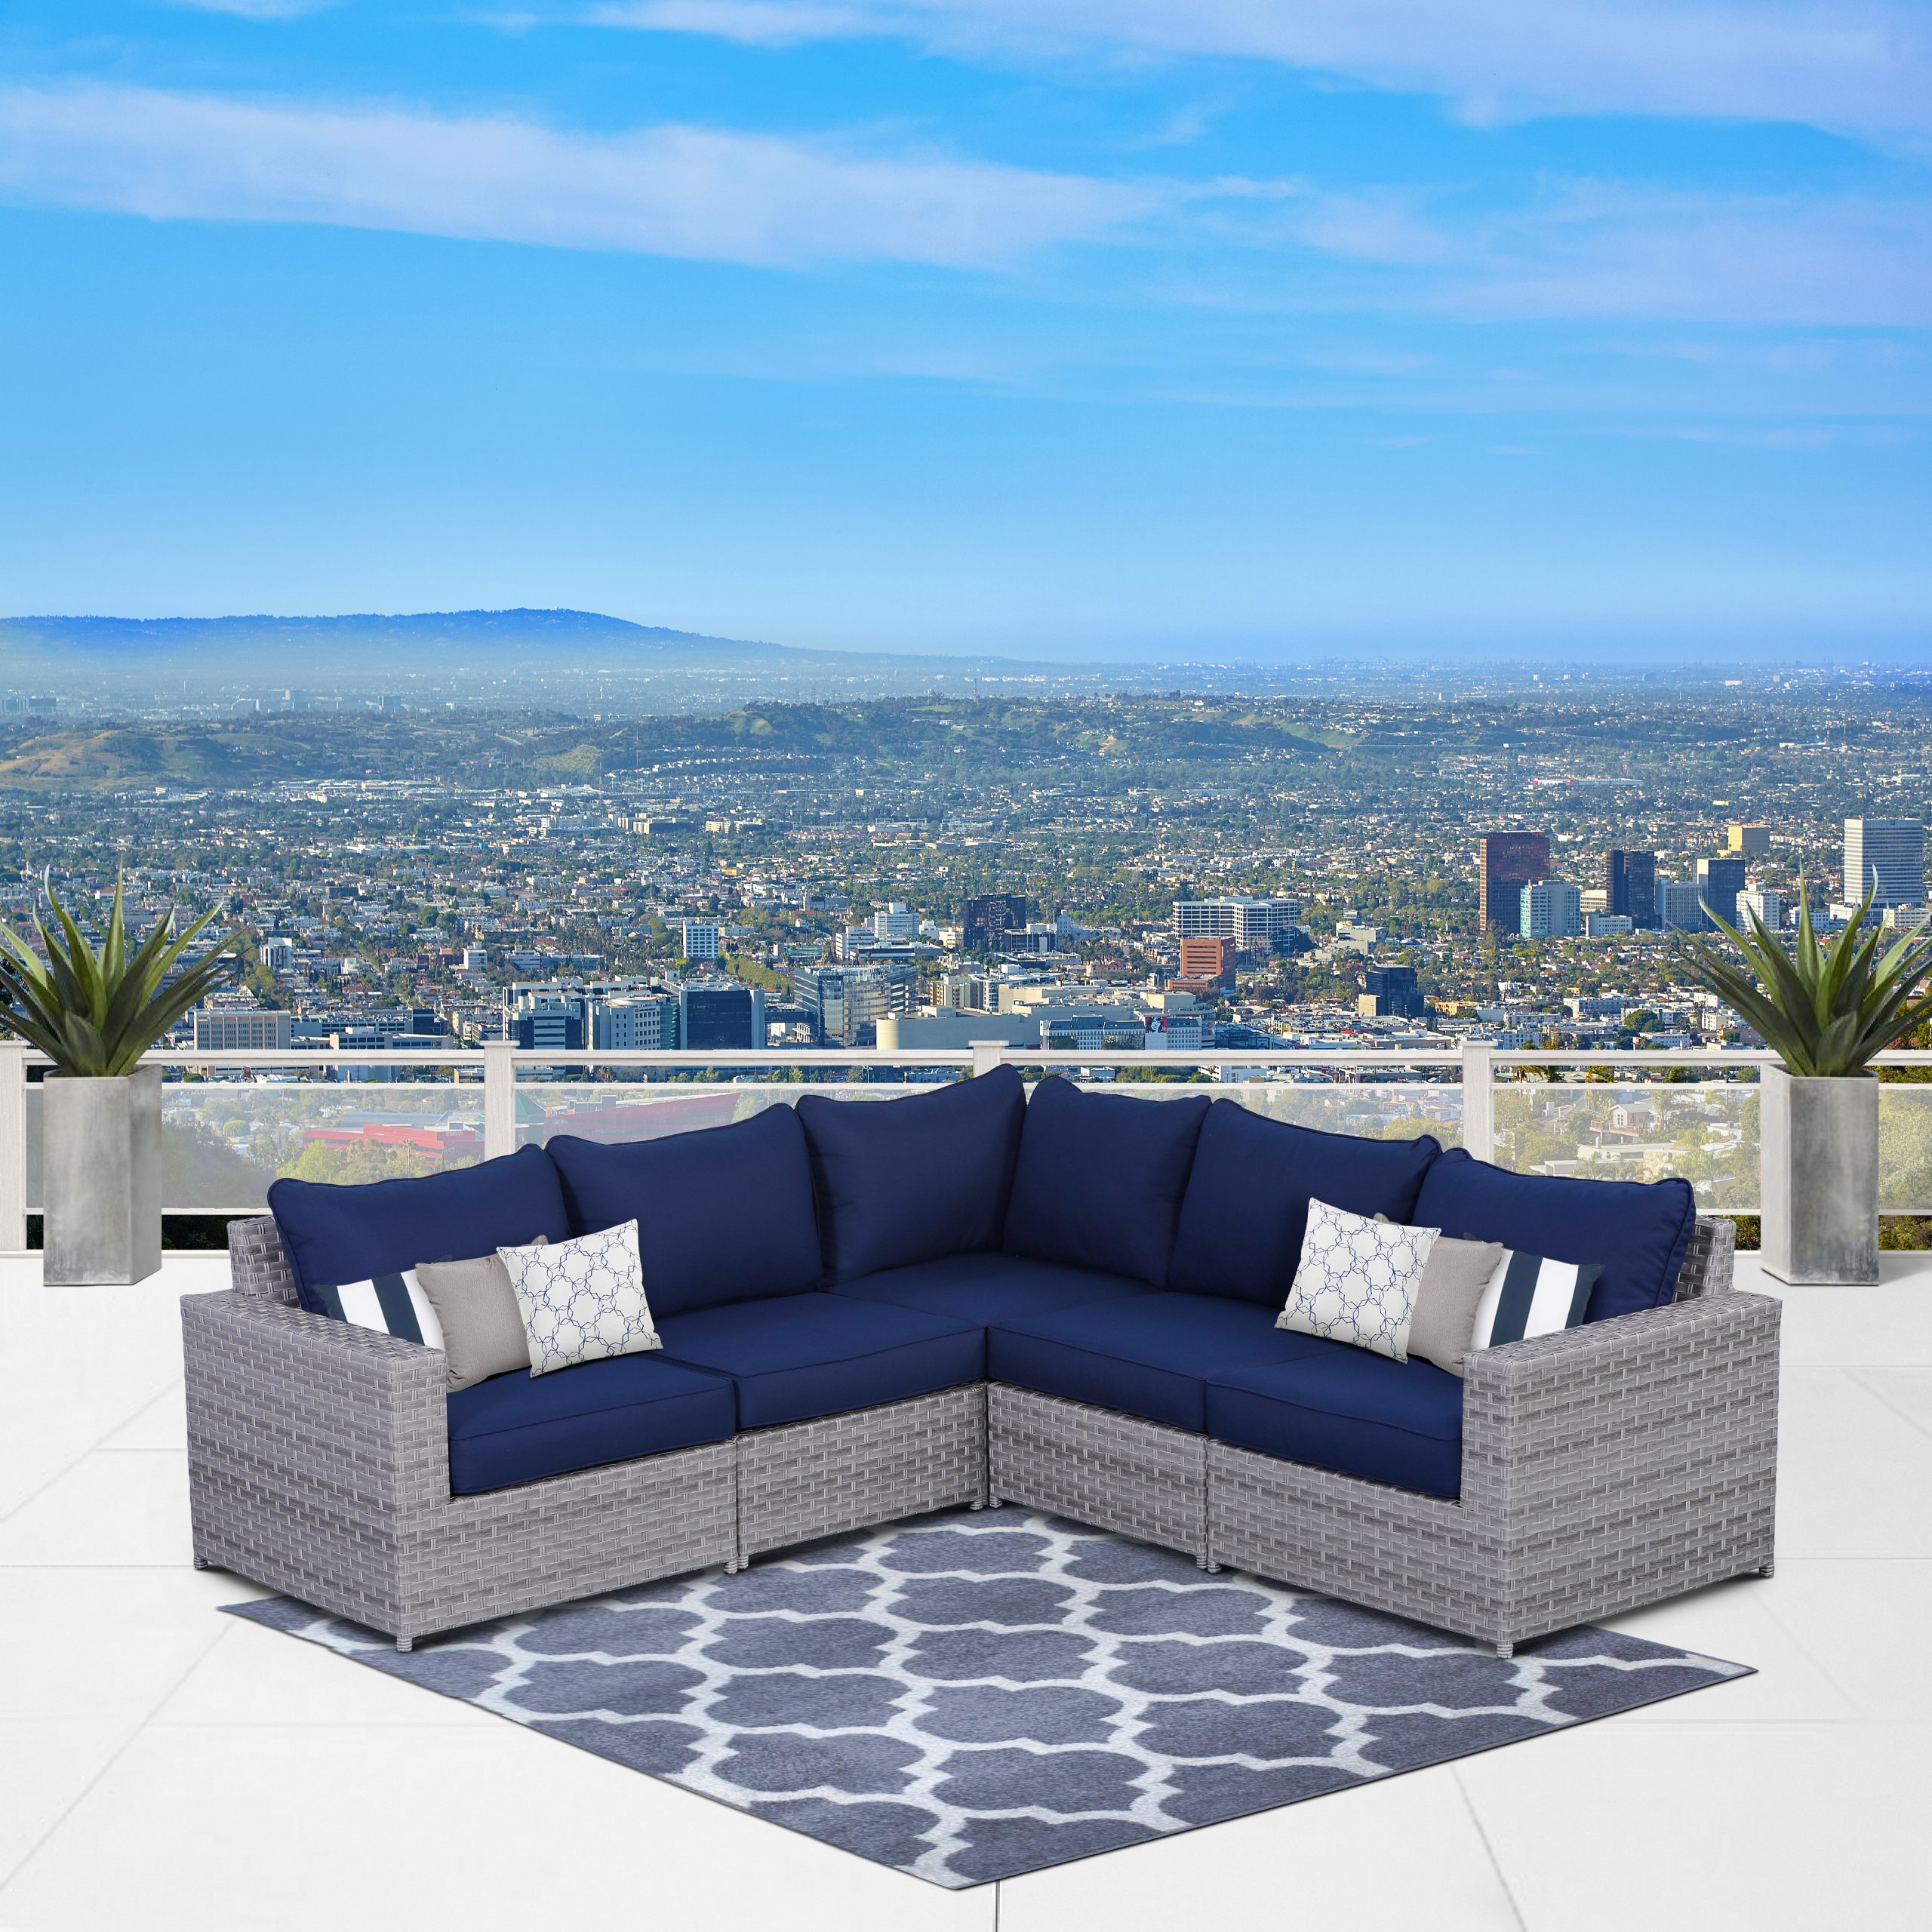 Latest Eldora Patio Sectionals With Cushions For Laron Patio Sectional With Cushions (View 7 of 25)